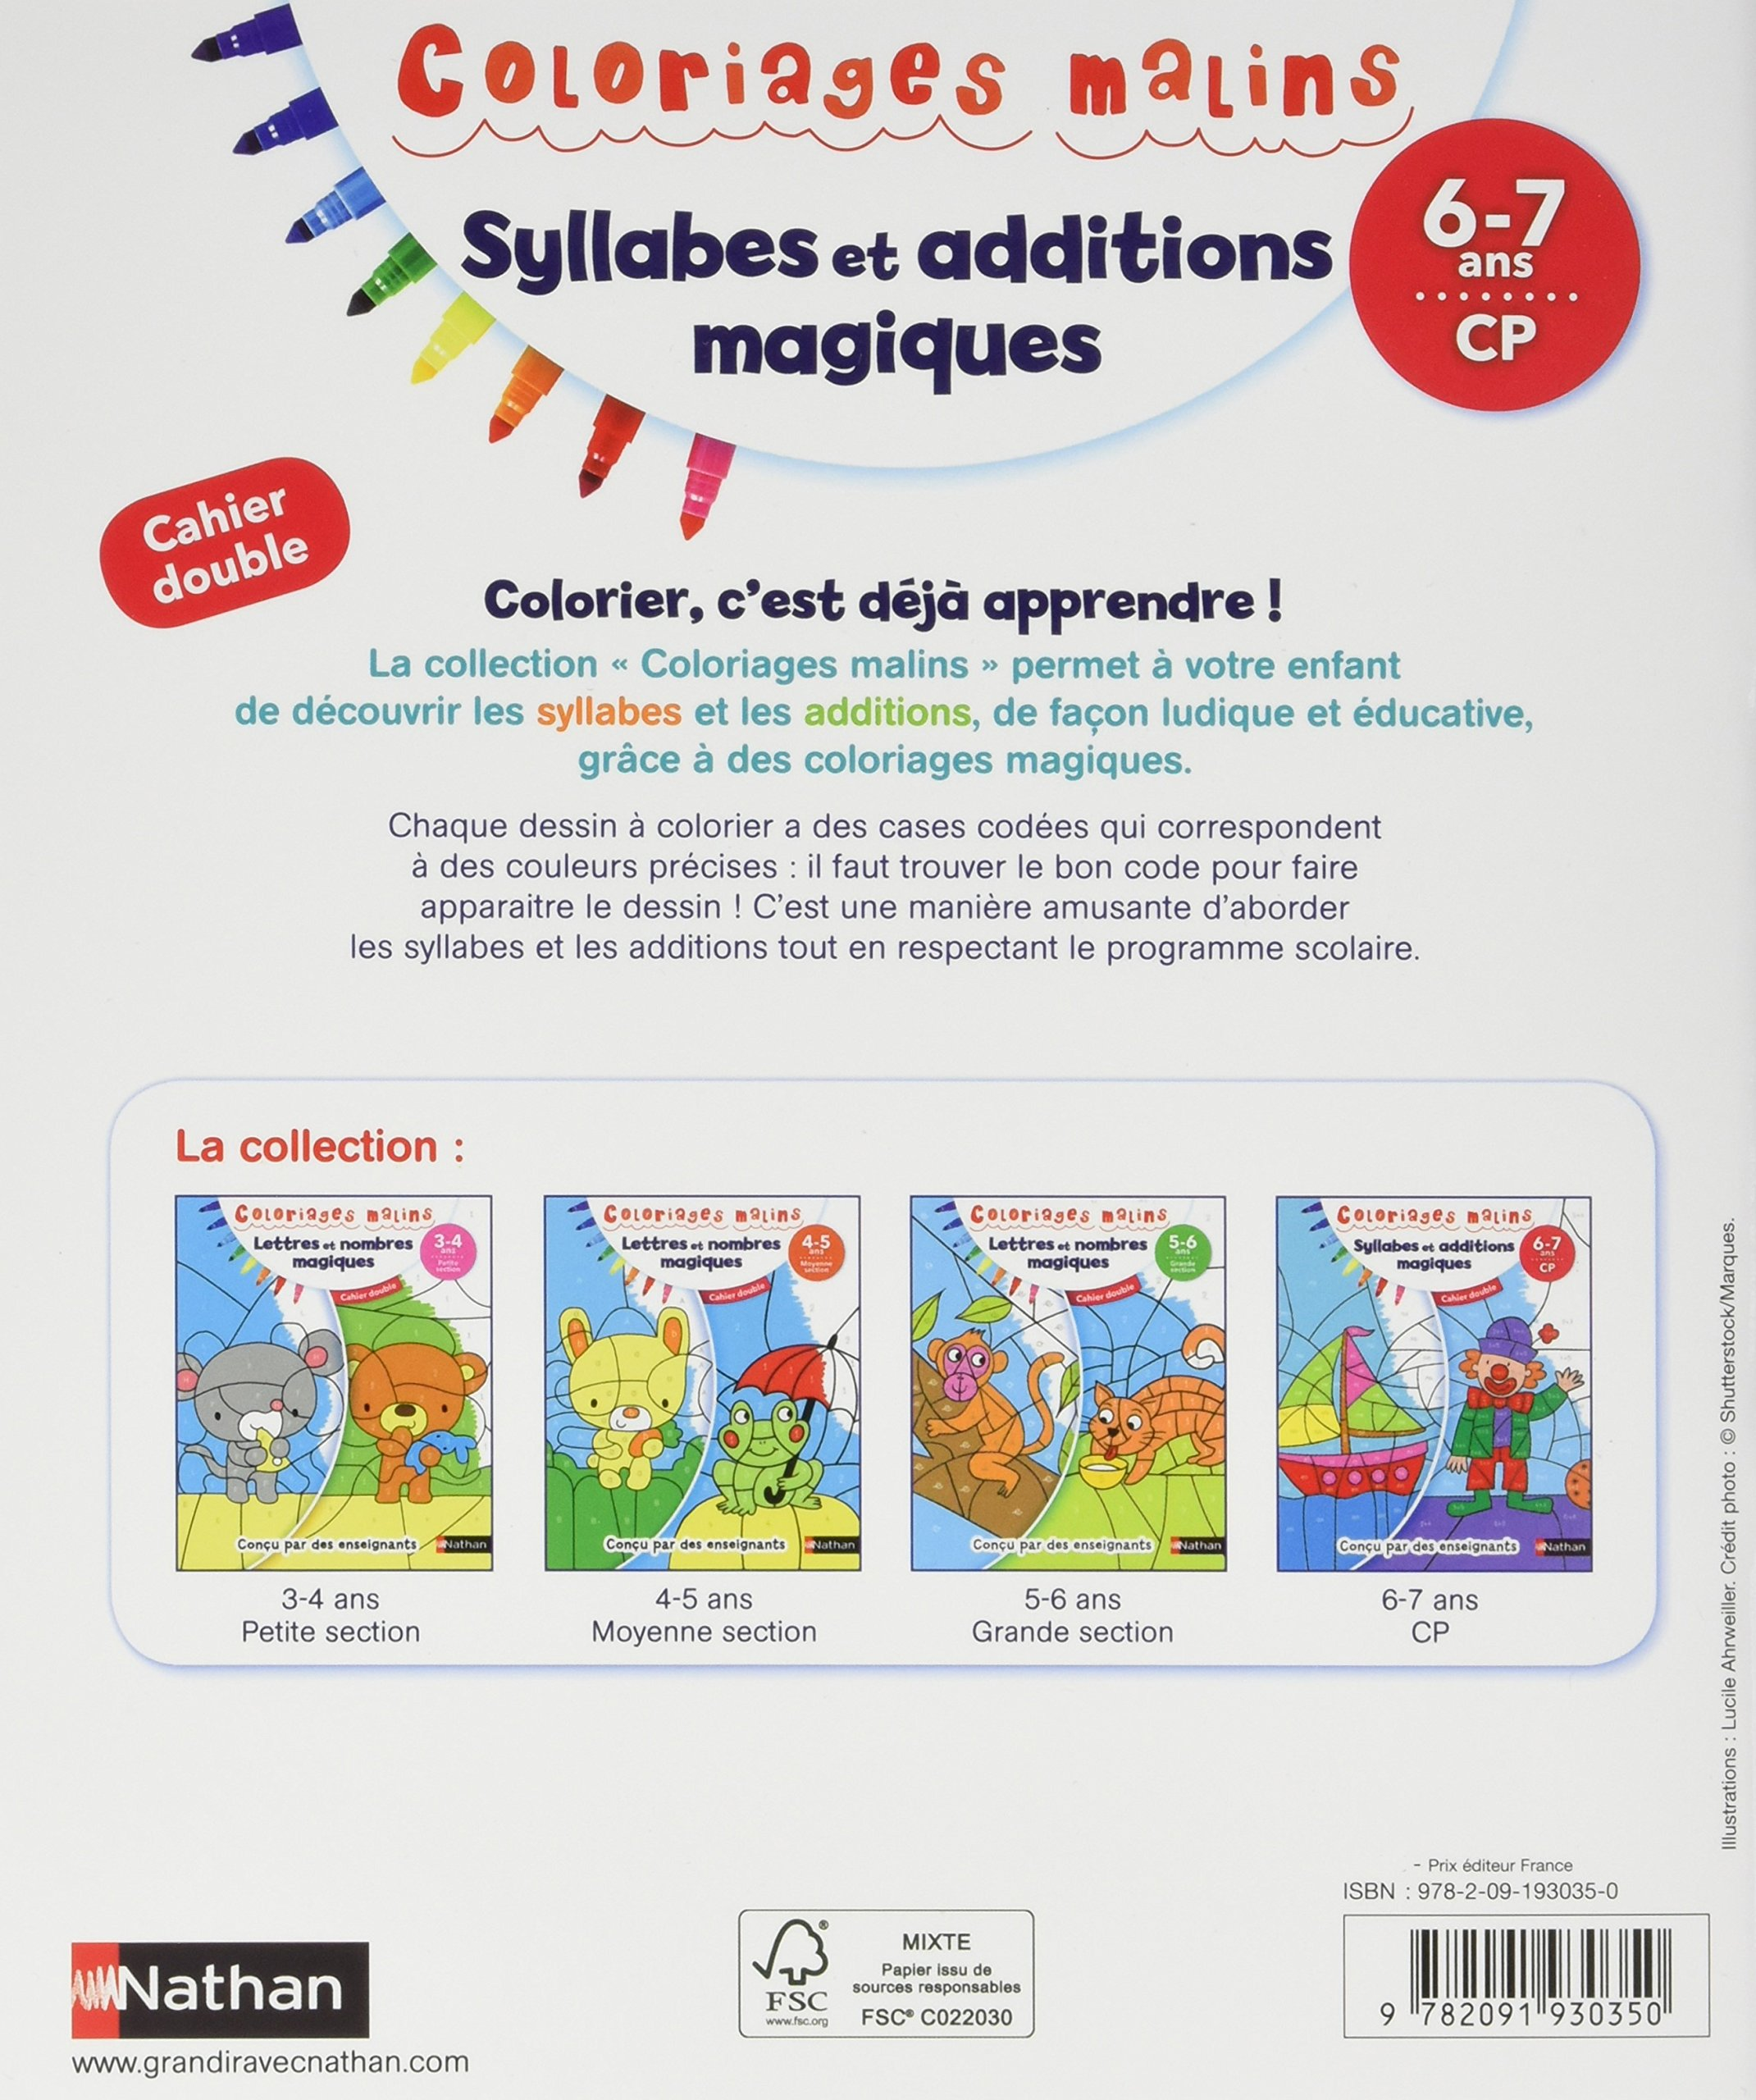 Coloriage Cp Syllabes.Syllabes Et Additions Magiques 6 7 Ans Cp Cahier Double